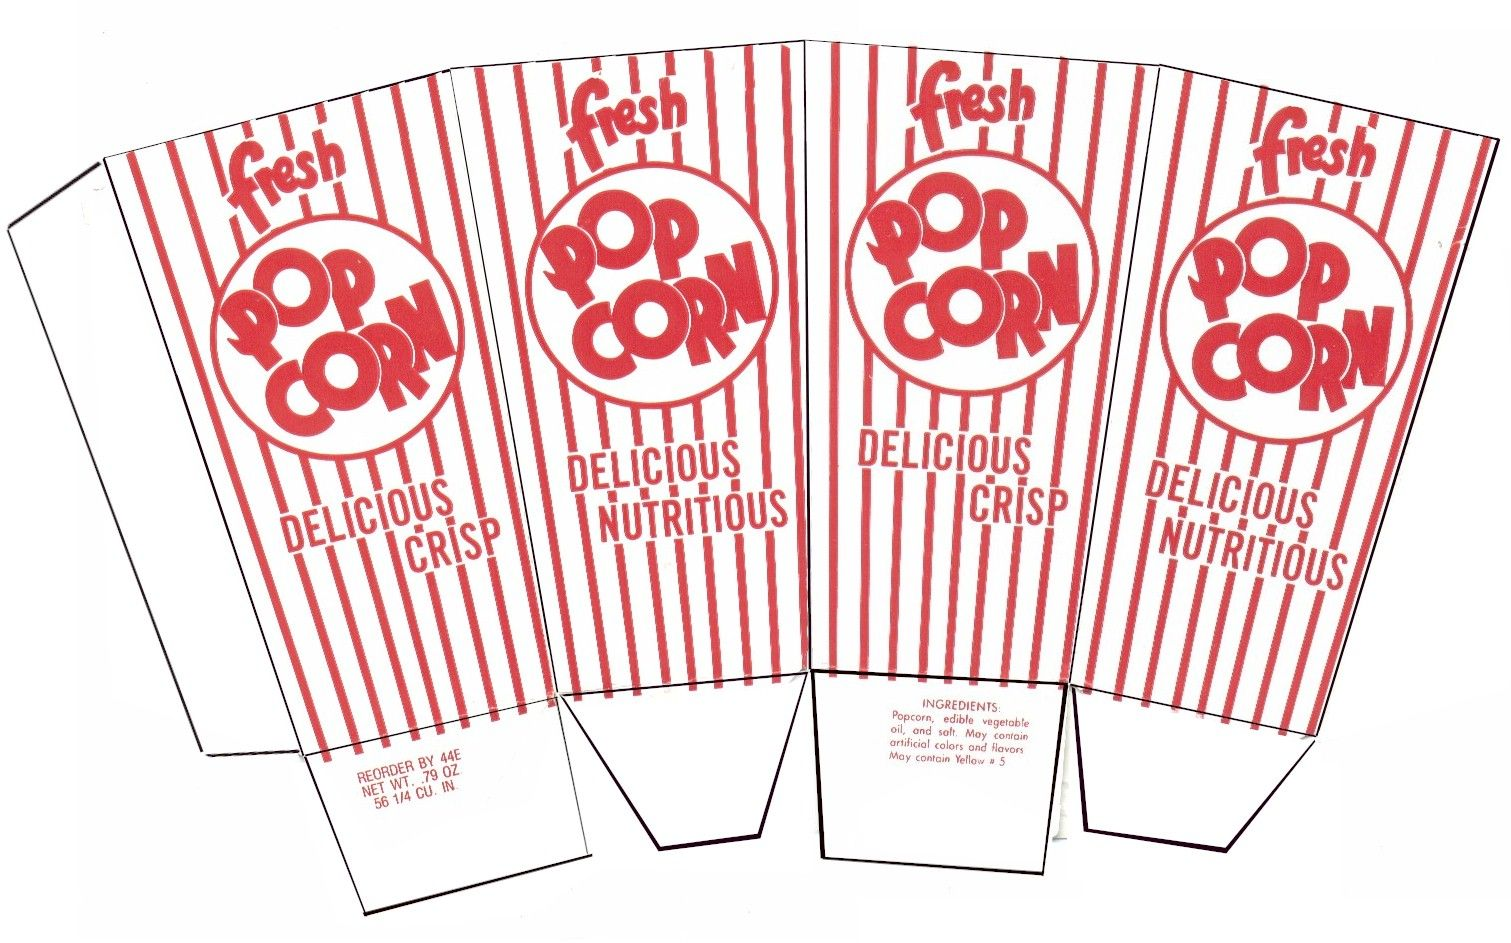 Popcorn box template plantilla caja de palomitas de ma z for Popcorn container template